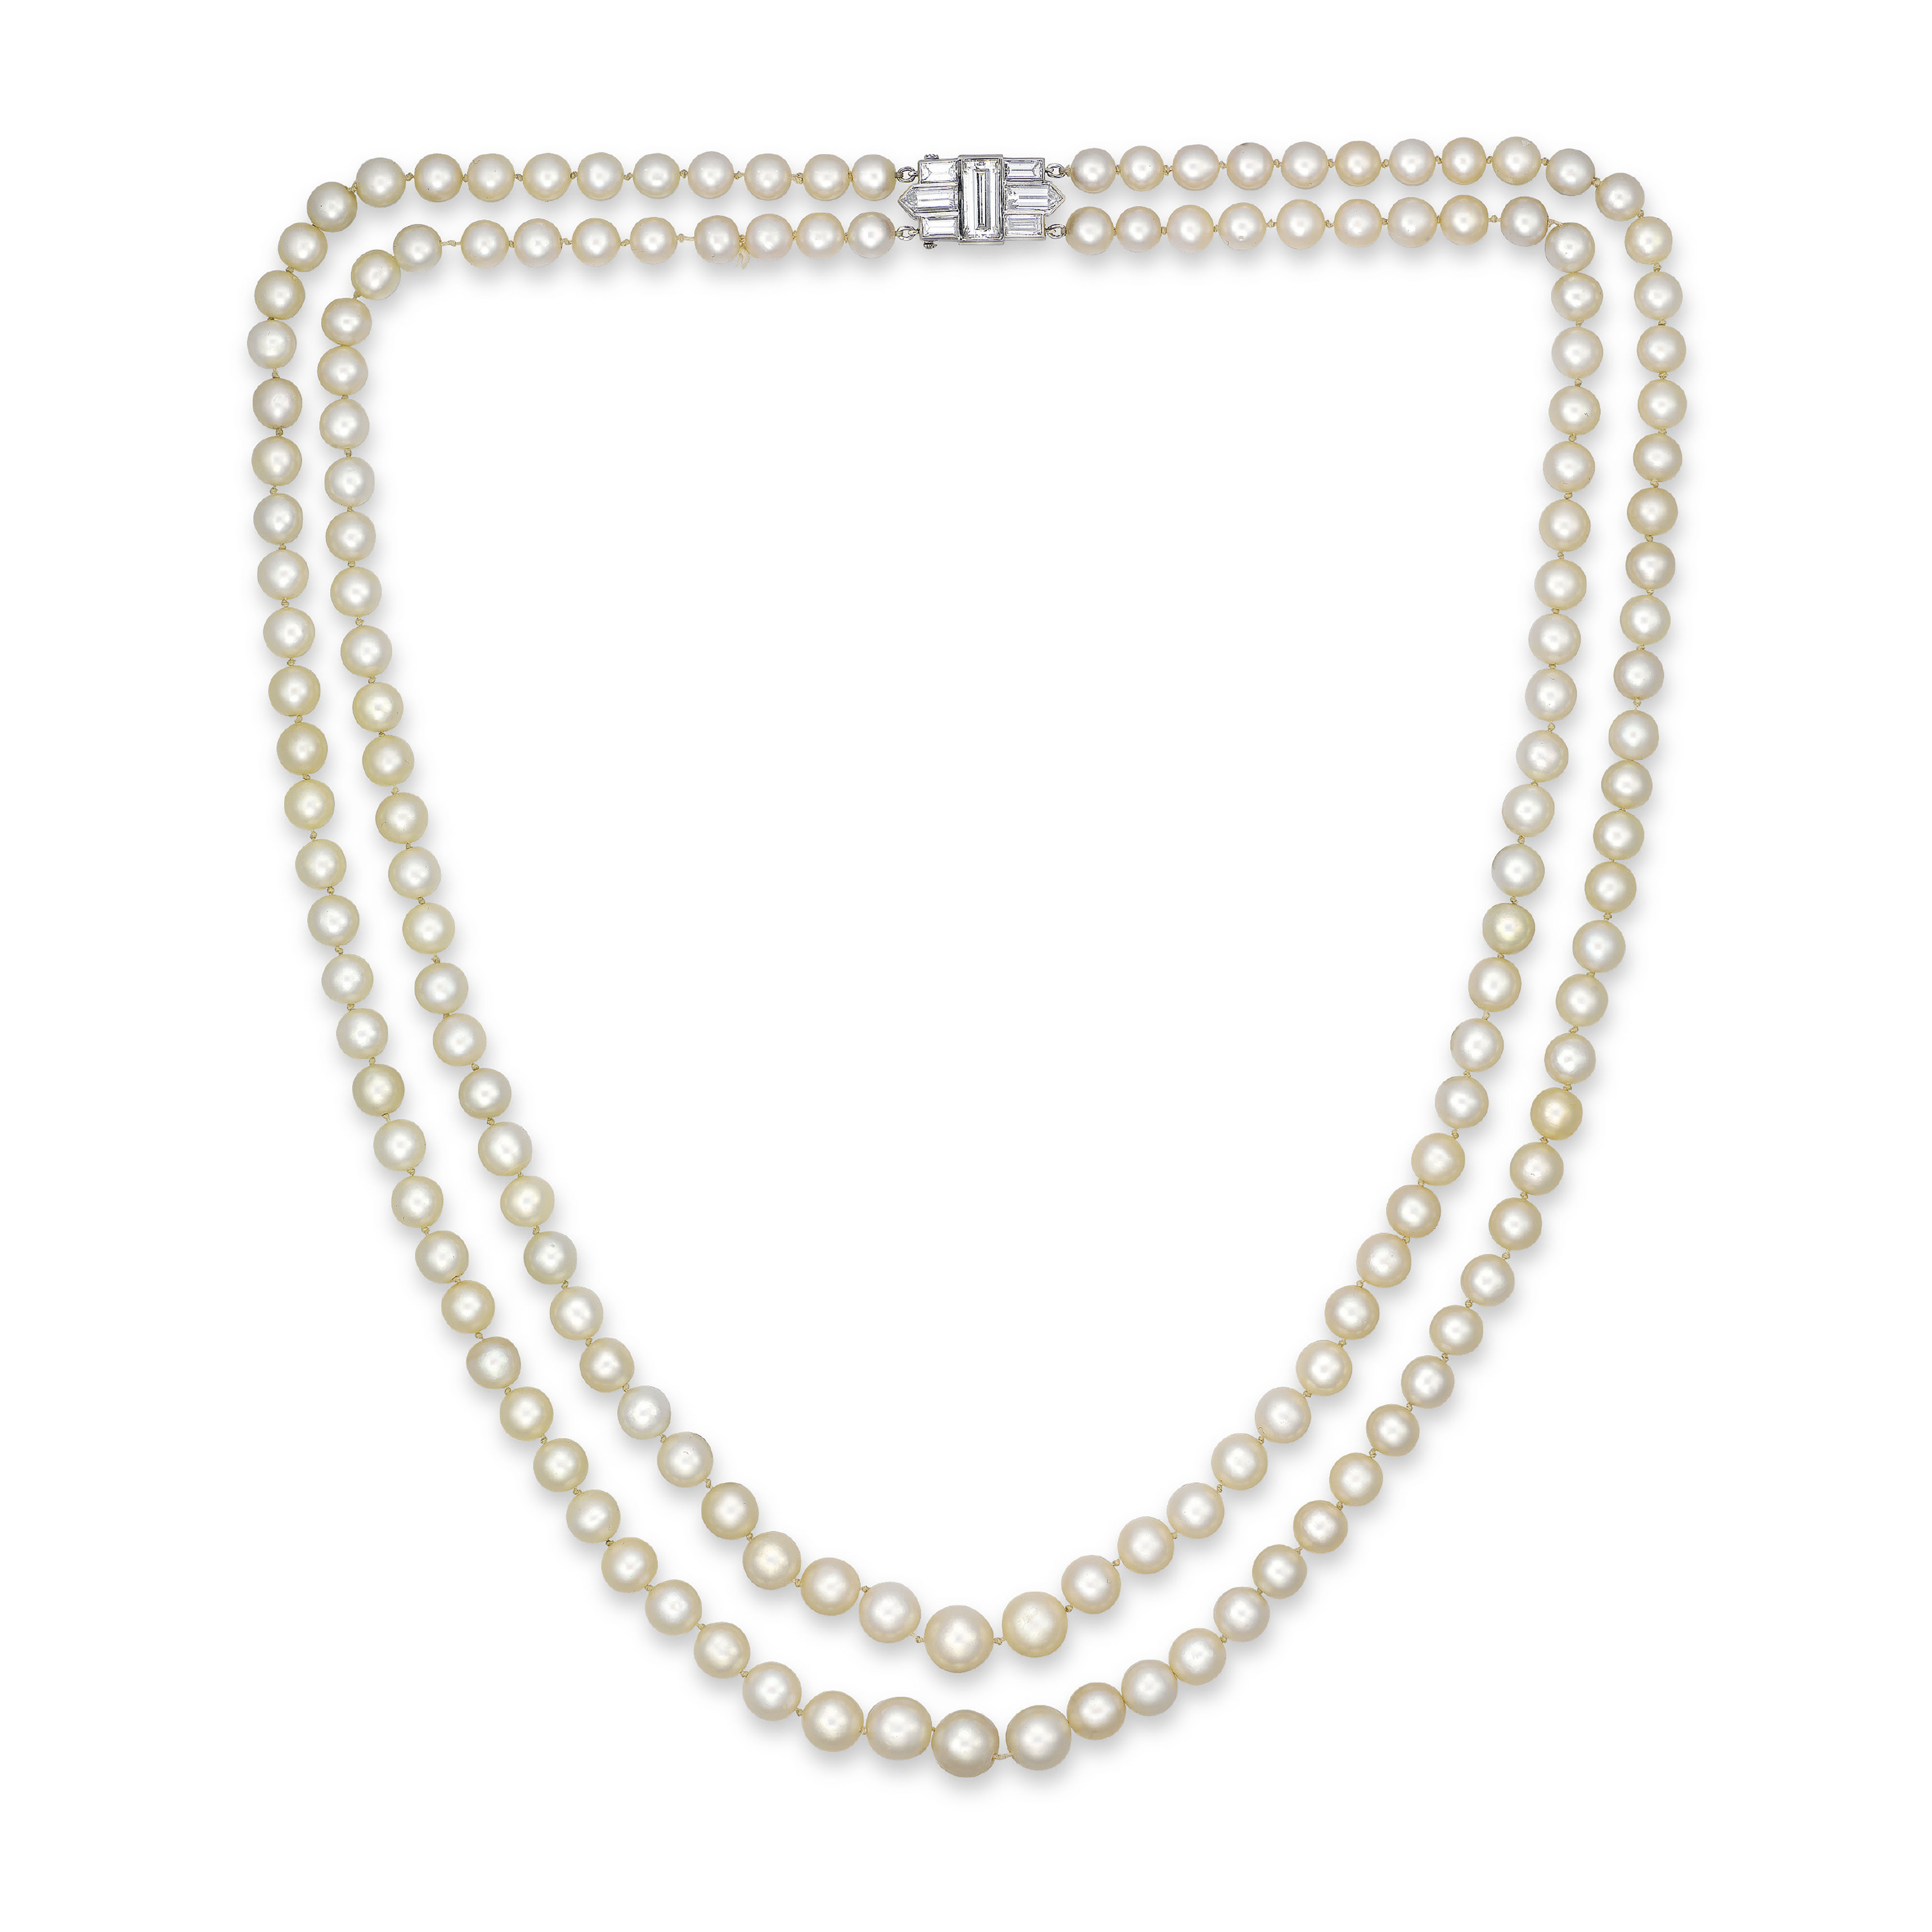 A TWO-STRAND NATURAL PEARL AND